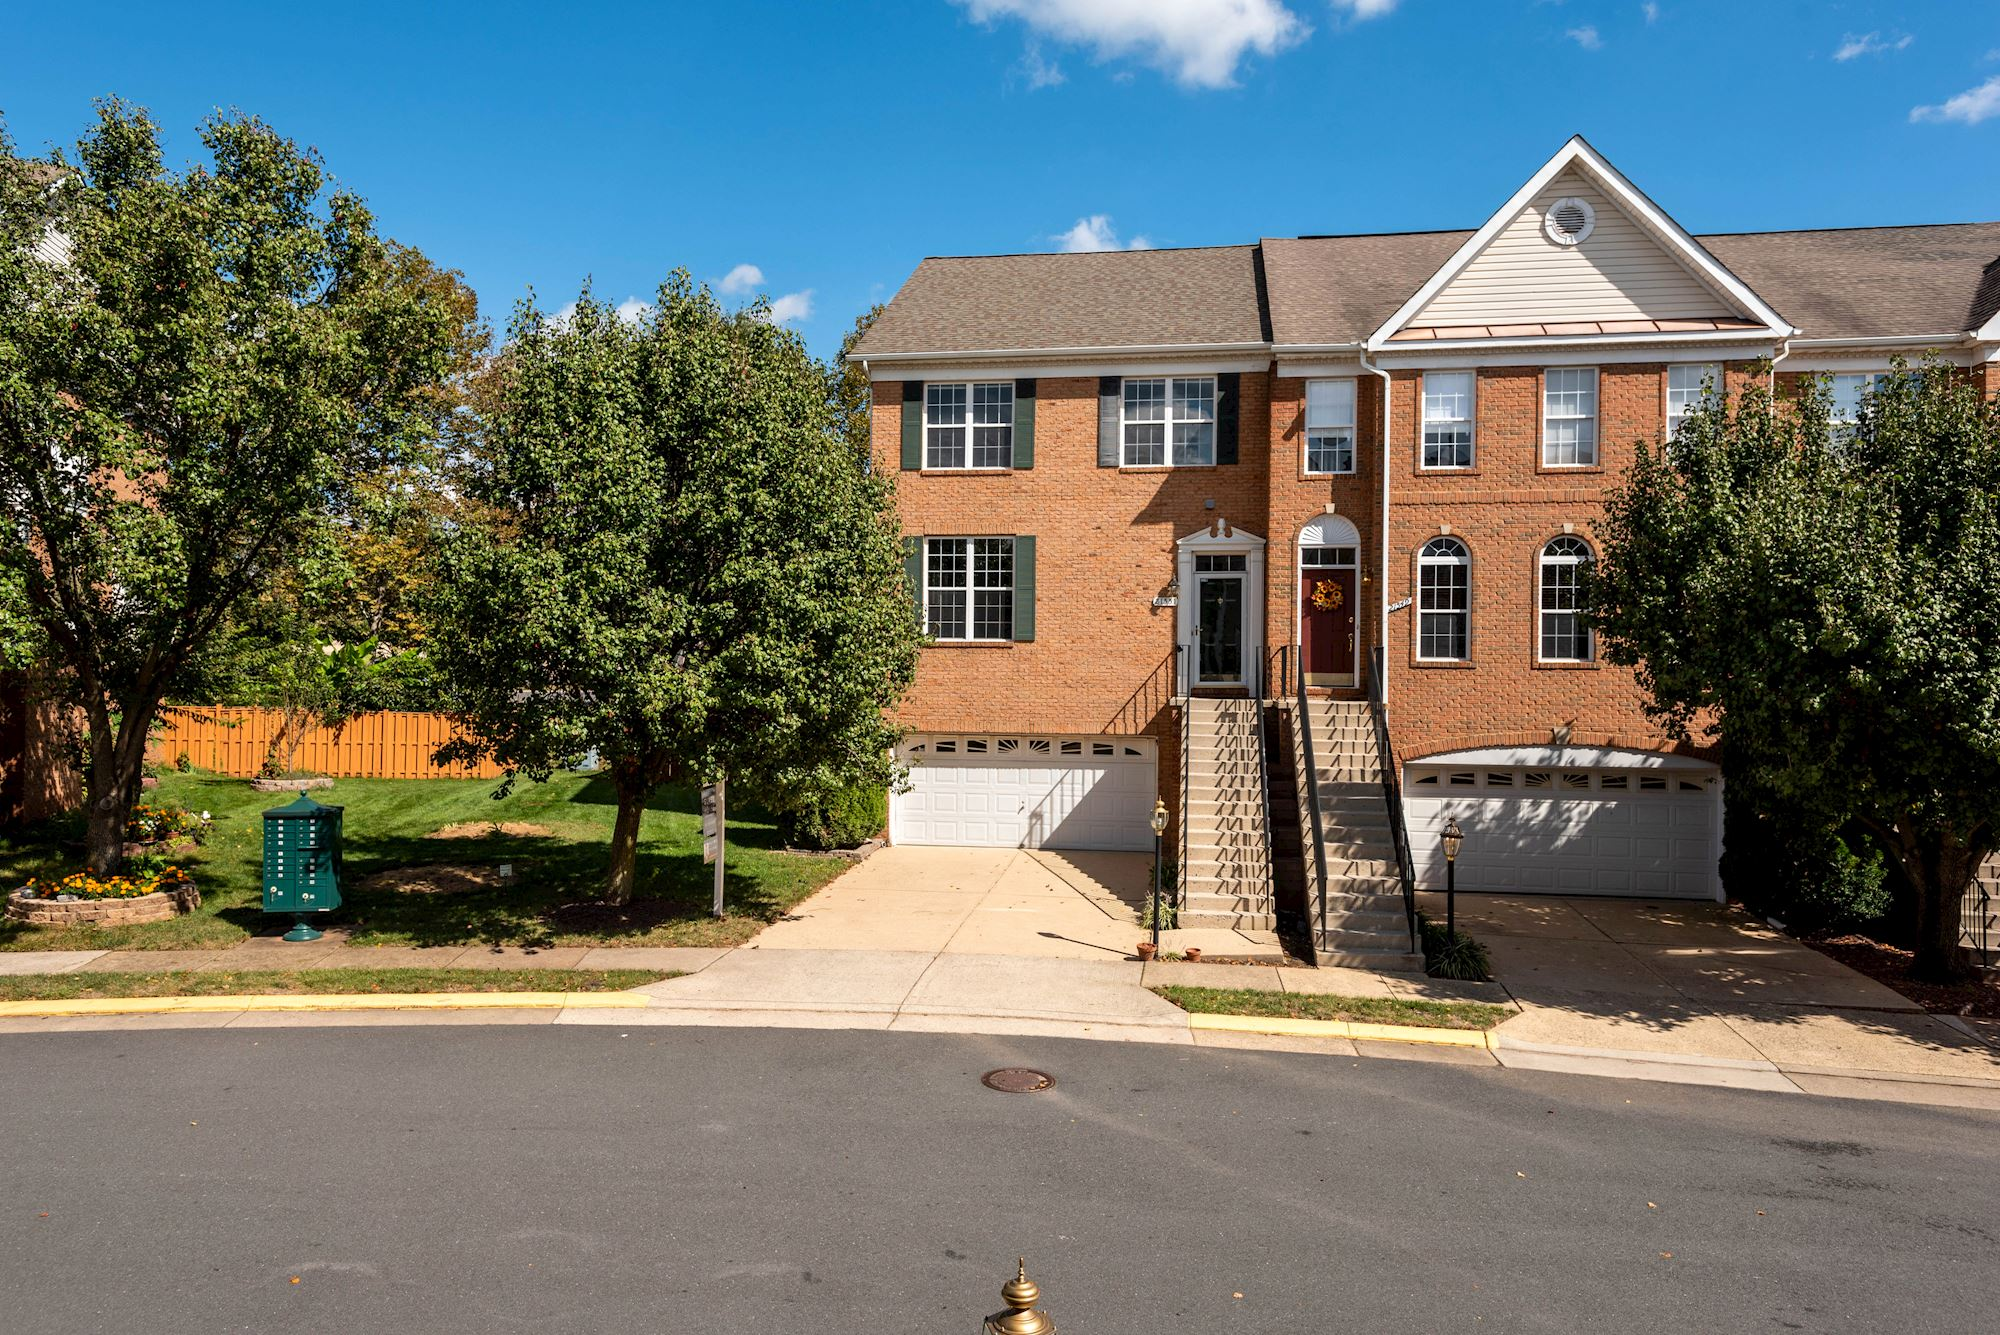 SOLD: 3 BD Modern and Bright Townhome in Ashburn,VA